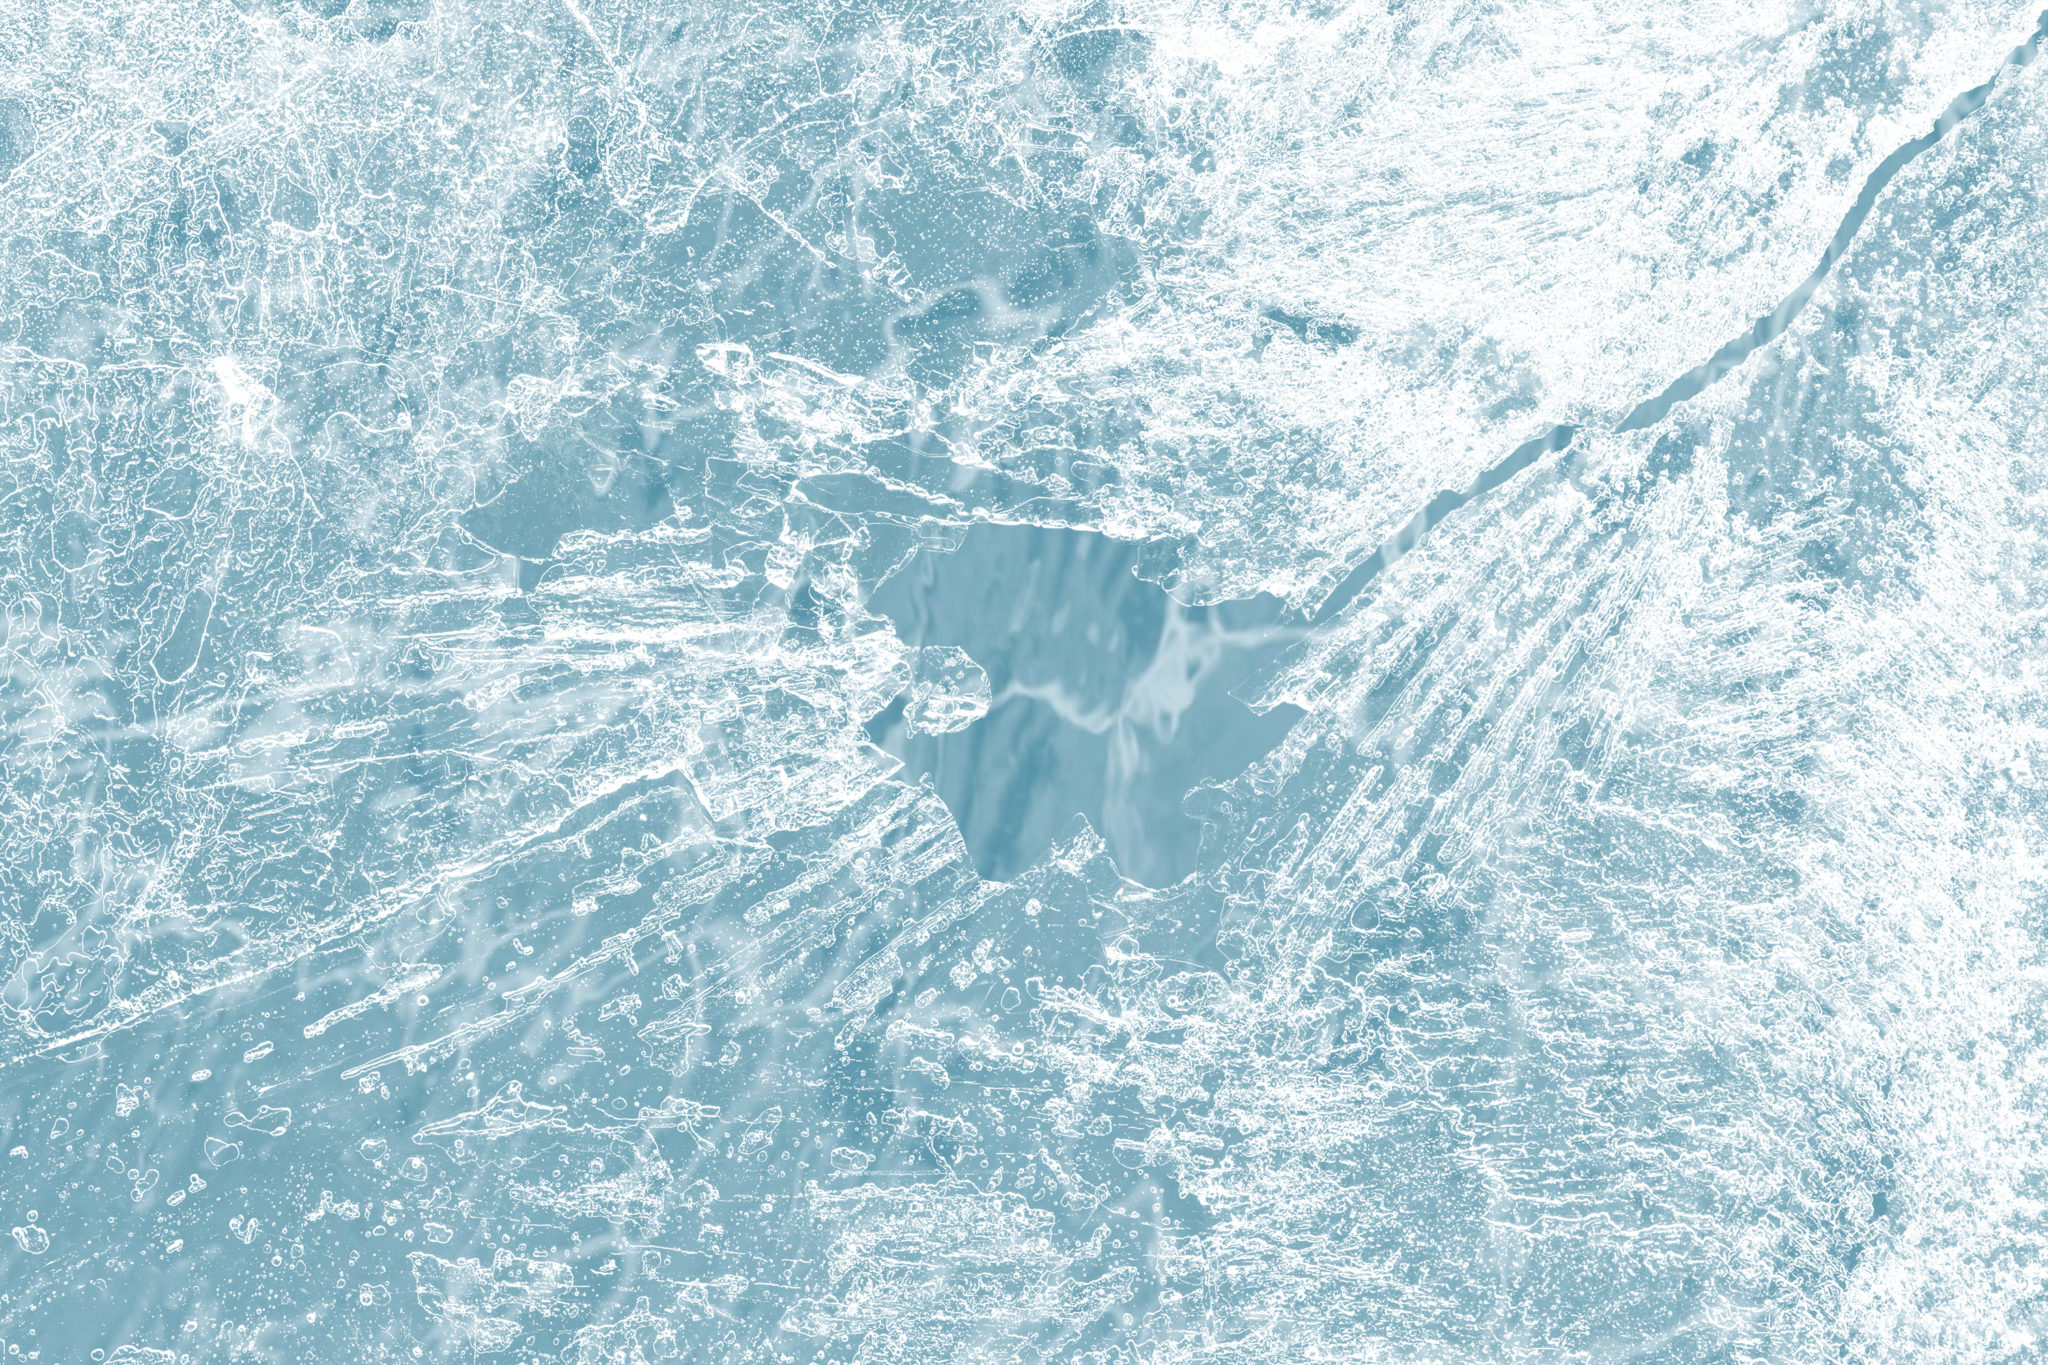 Ice surface texture macro shot on a blue backgrond wallpaper